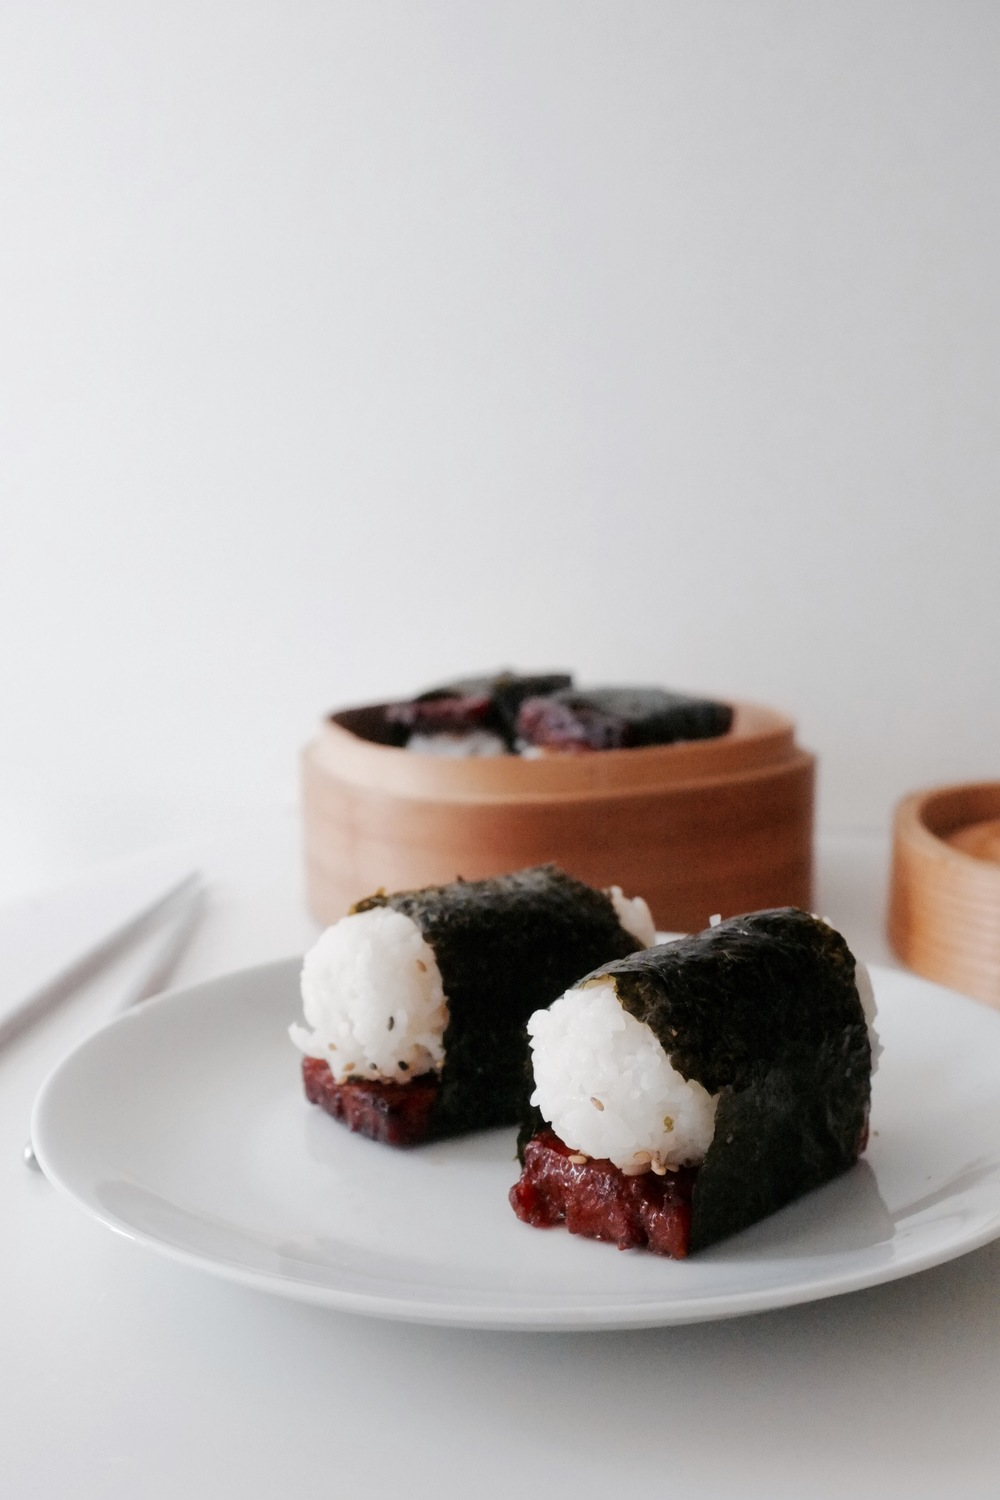 Spam Musubi - Hill Reeves